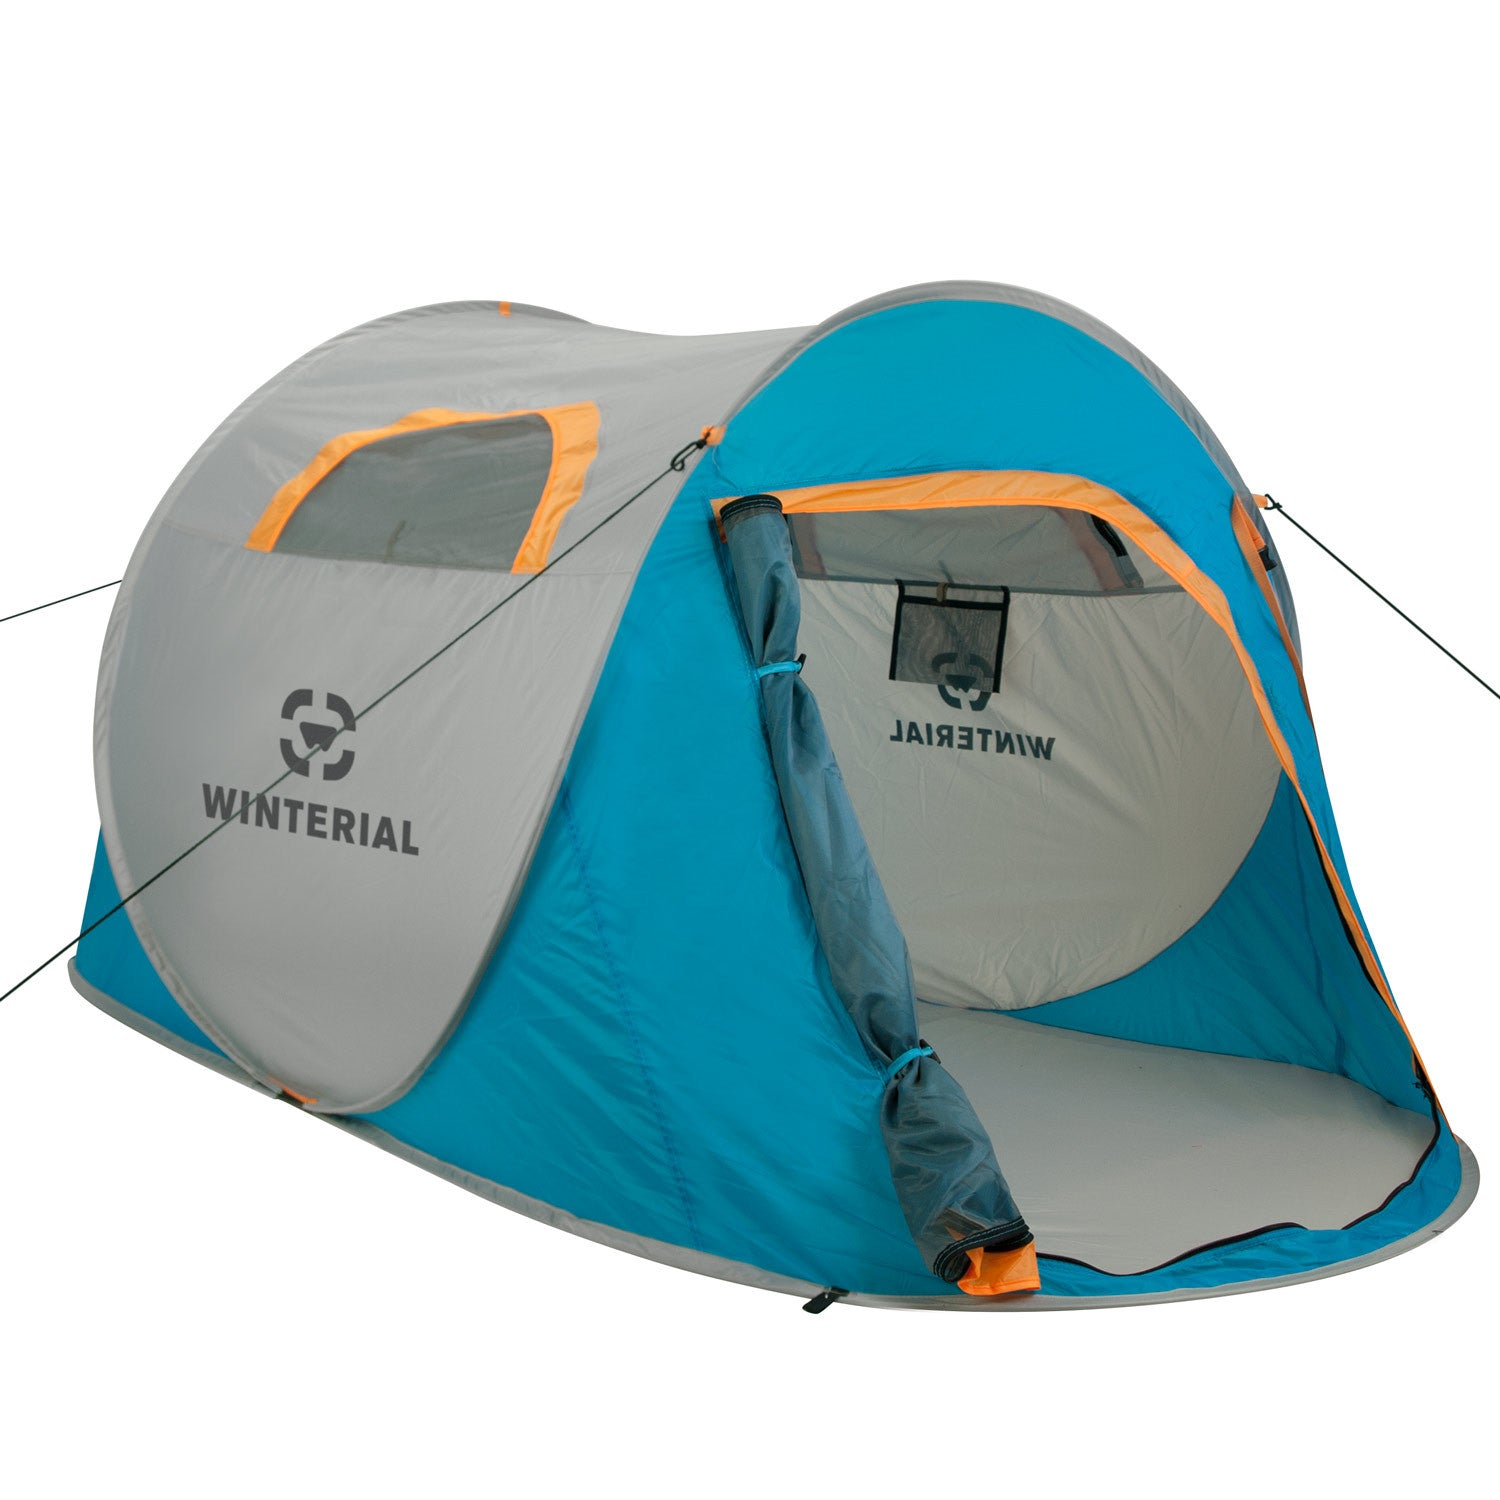 ... 2 person pop up tent blue and grey with 1 door ...  sc 1 st  Winterial.com : 2 person tent - memphite.com